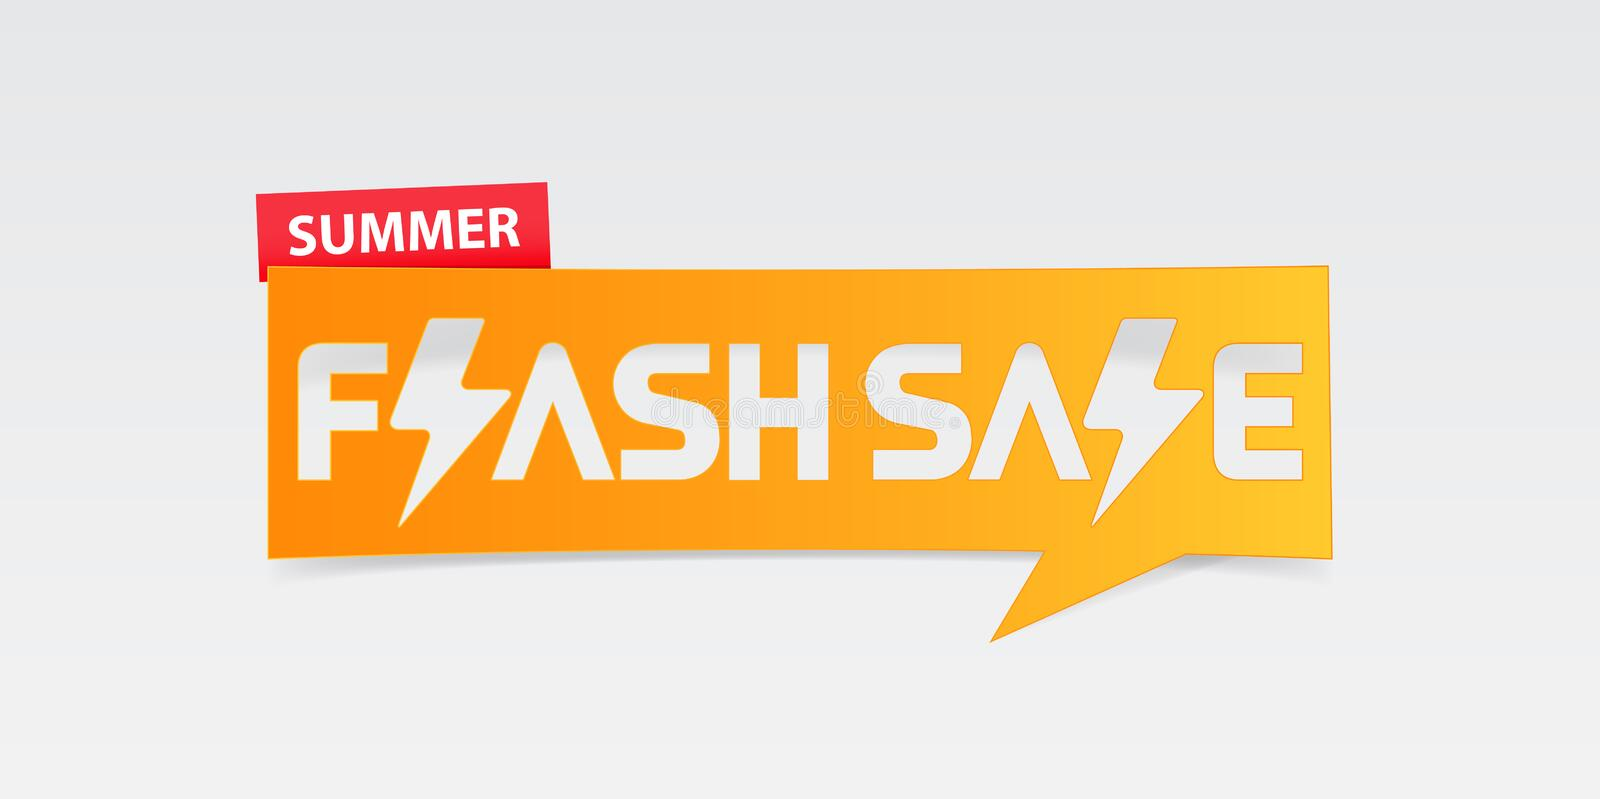 Summer flash sale banner template design. Special offer poster for summer season. Summer flash sale typography with thunder icon. vector illustration